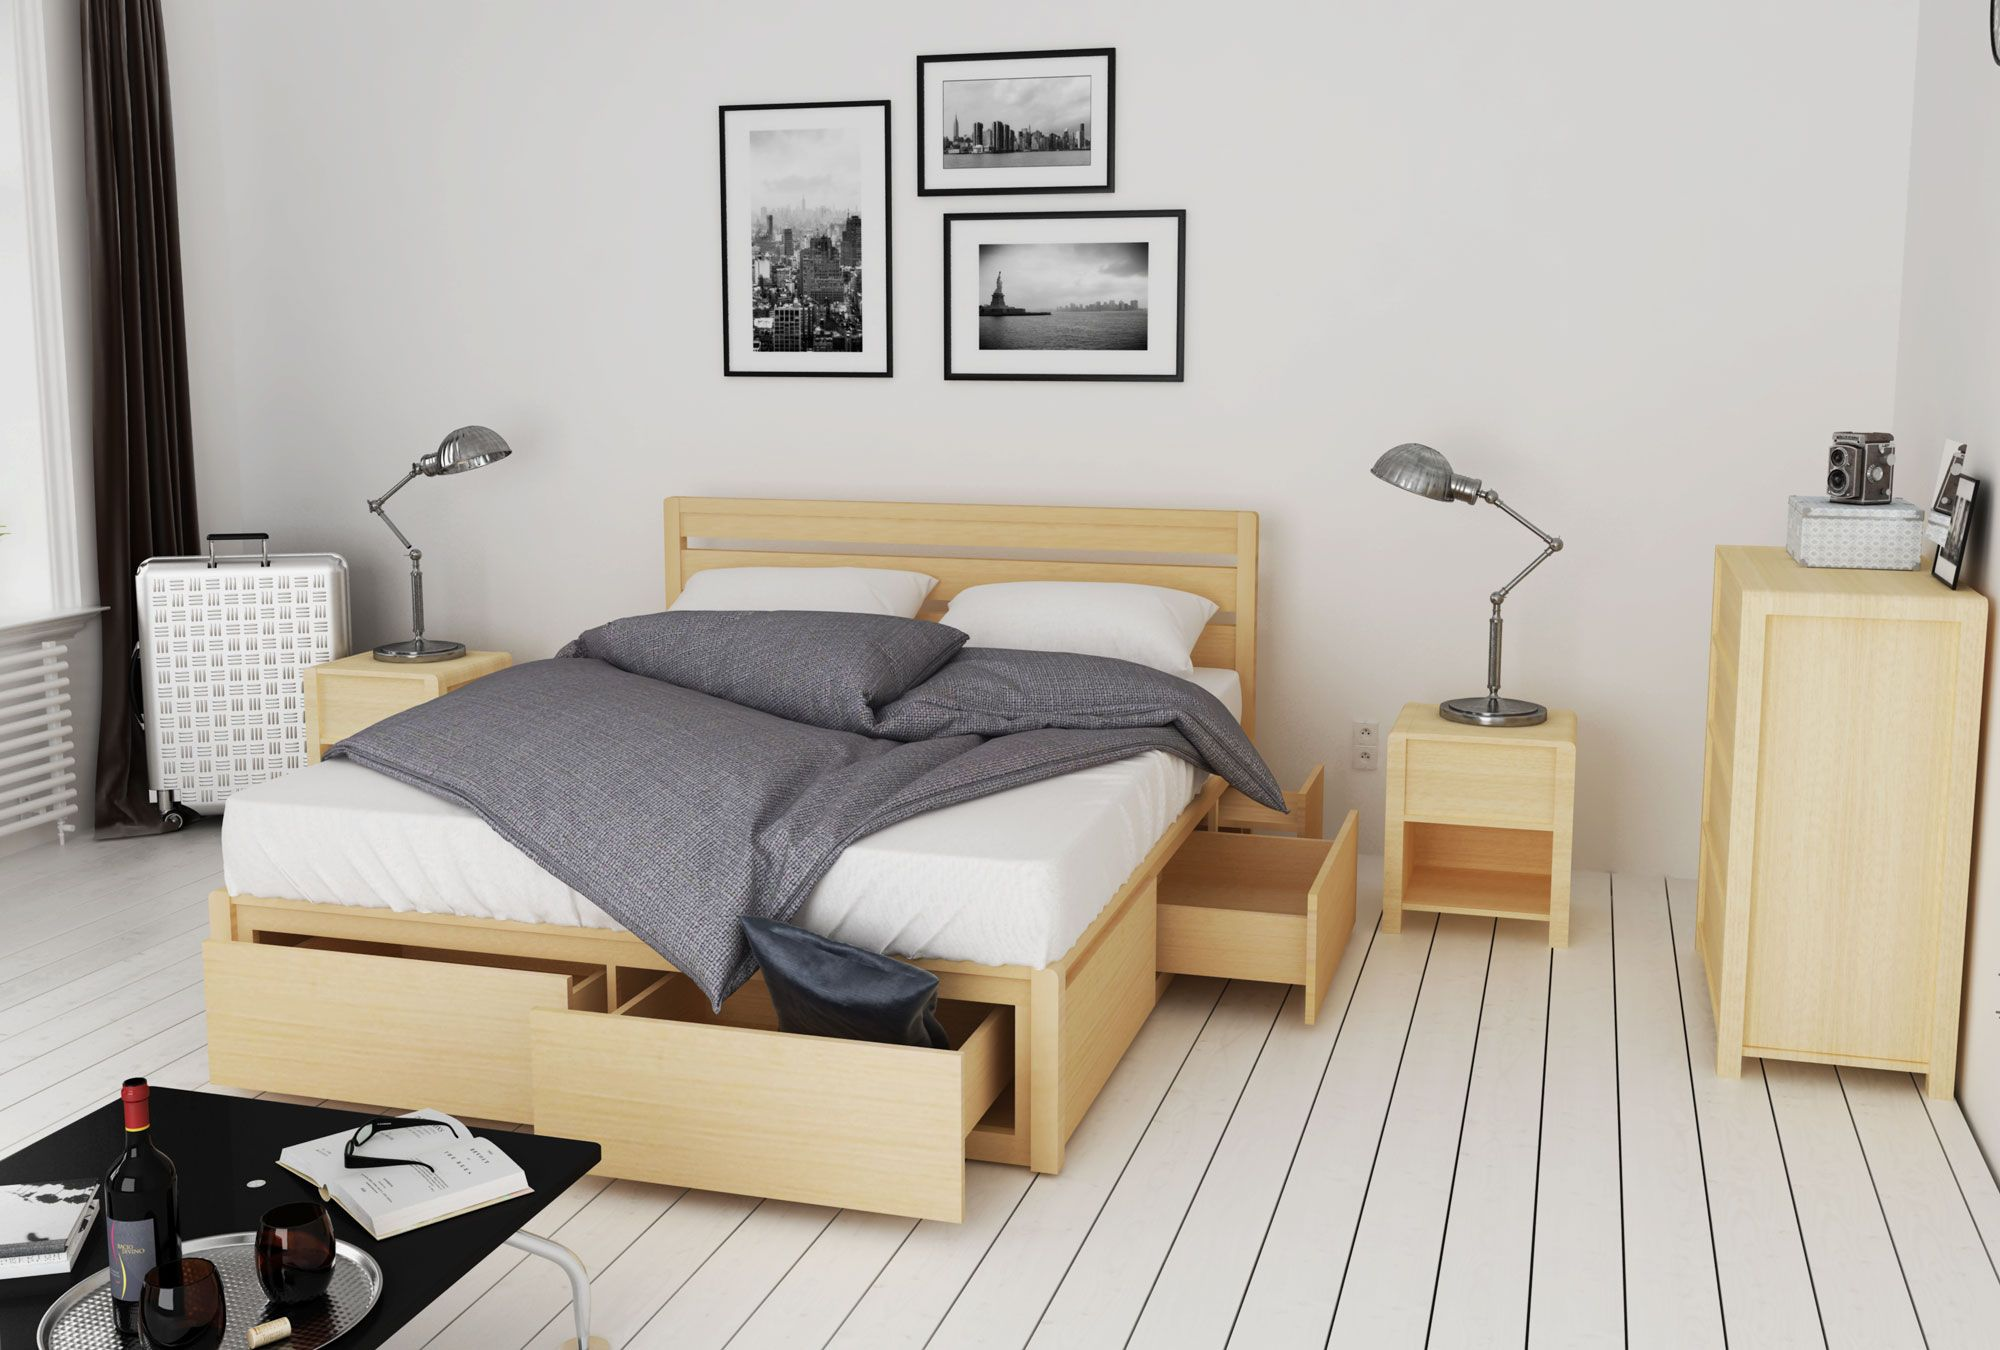 Oakano Furniture Nz Quality Living Bedroom Furniture Bed Frame With Storage Small Room Design Bedroom Room Design Bedroom